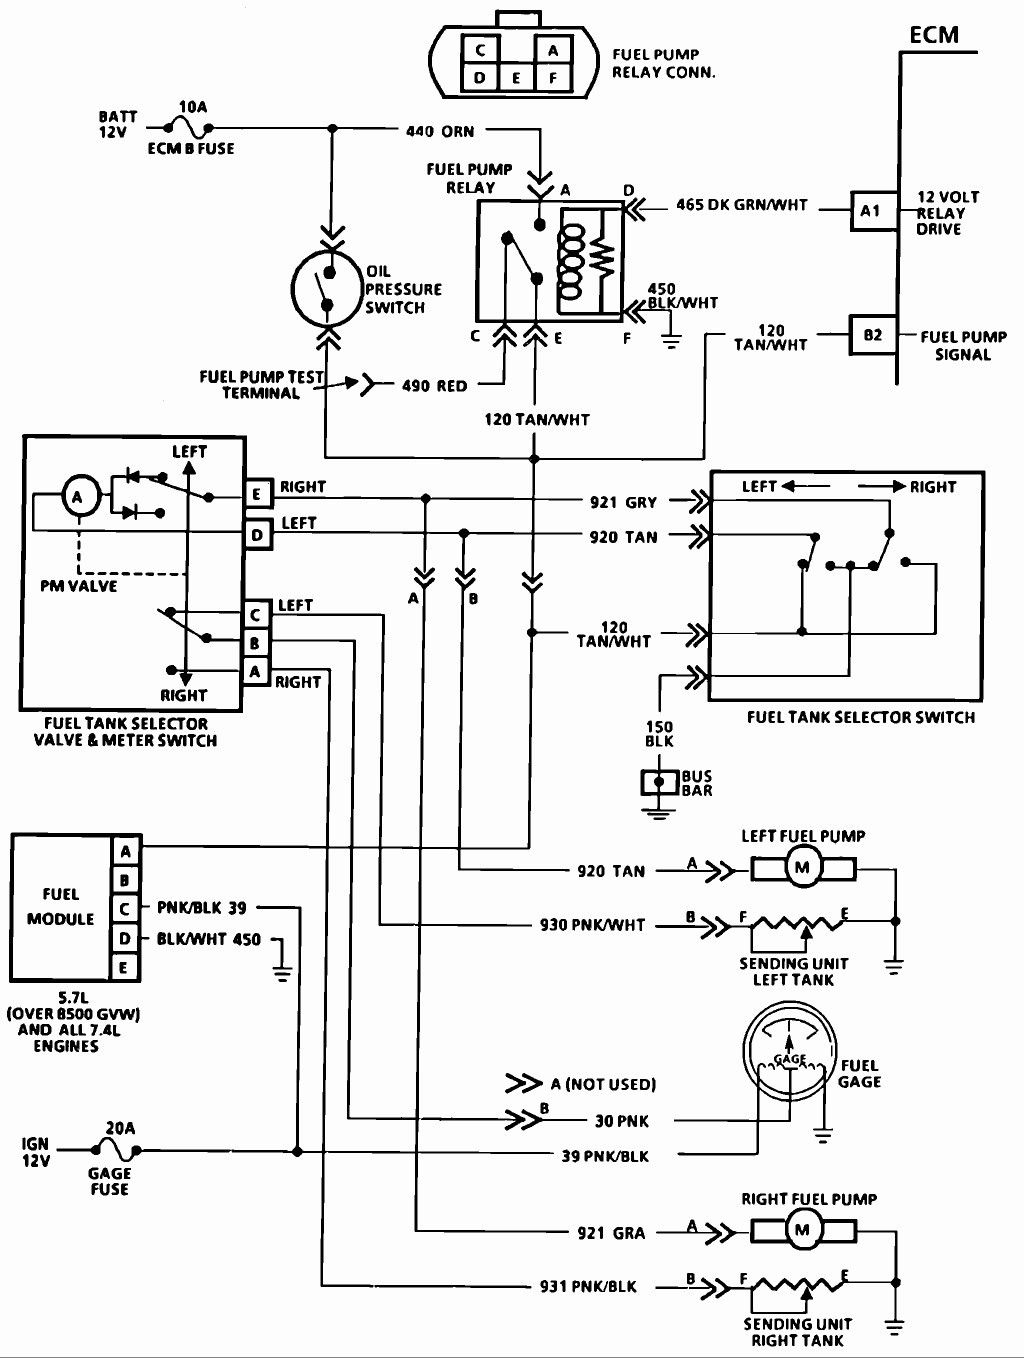 New Fuel Tank Selector Switch Wiring Diagram In 2020 Electrical Diagram Chevy Trucks Chevy